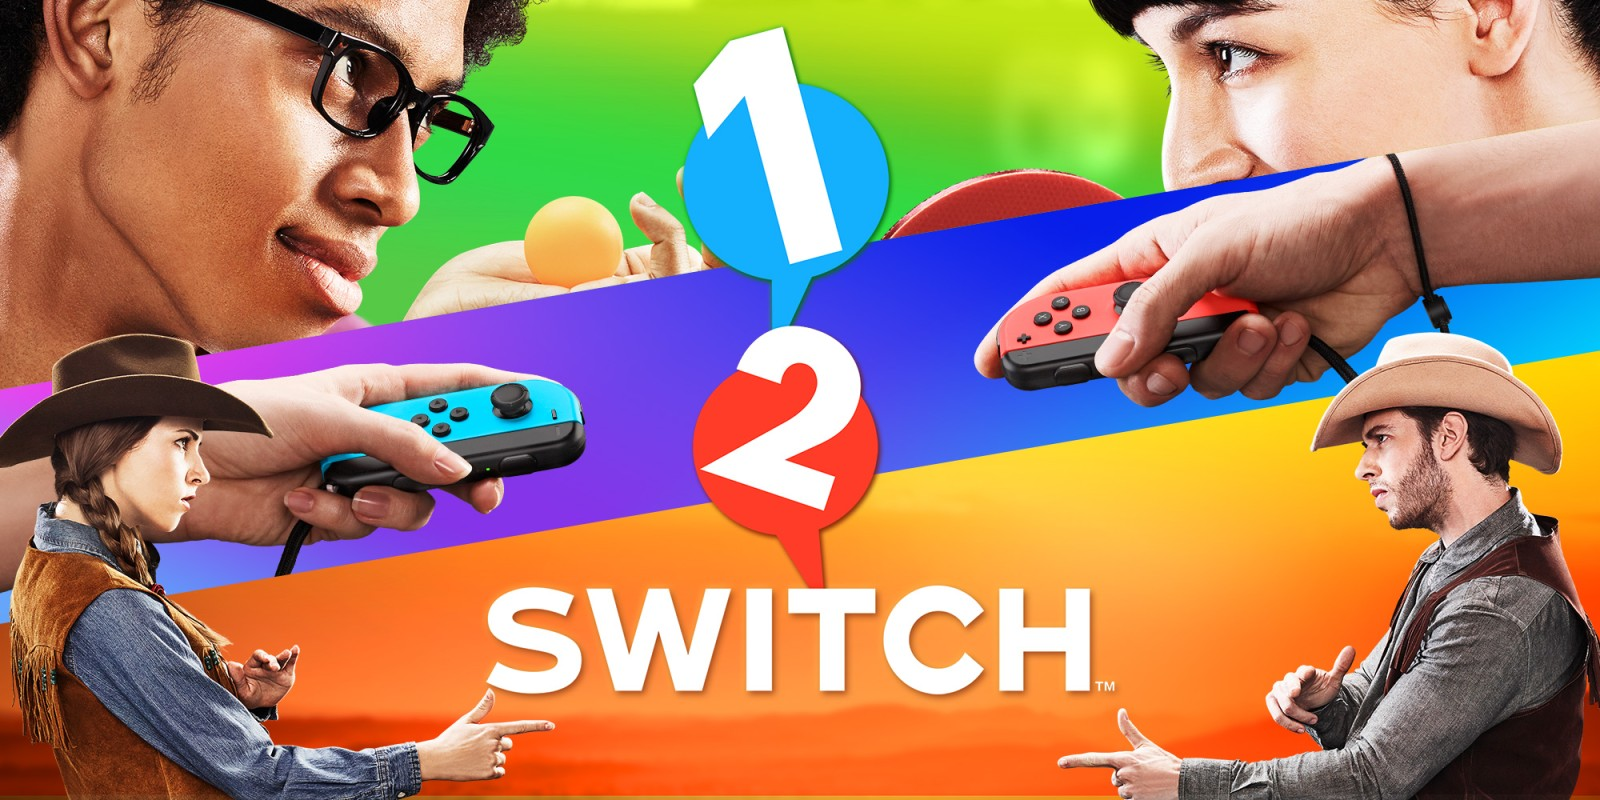 switches1 by switches2 by